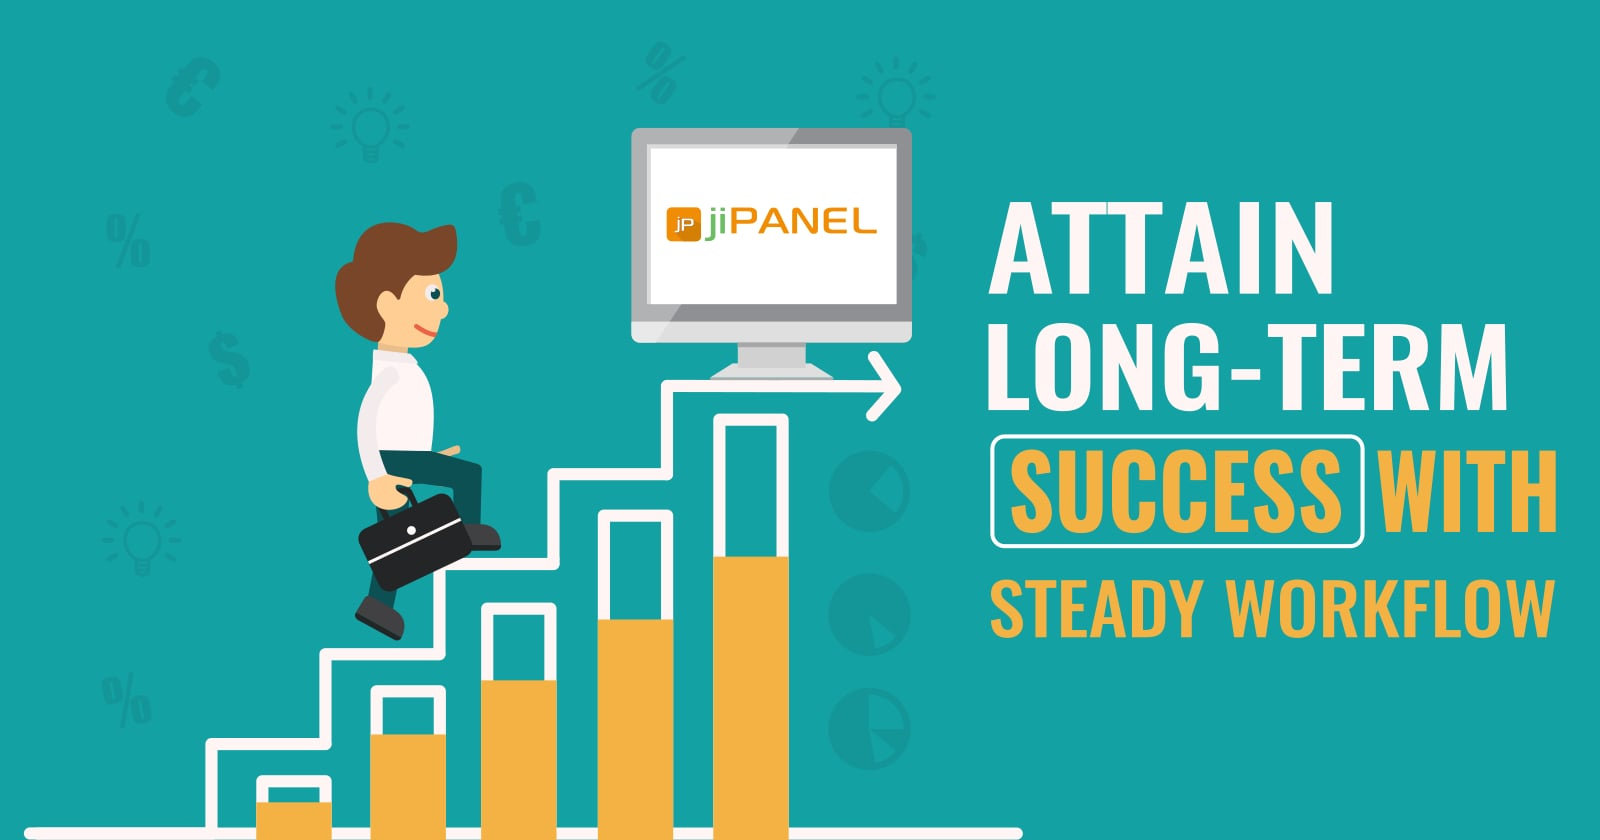 Attain Long-term Success With Steady Workflow